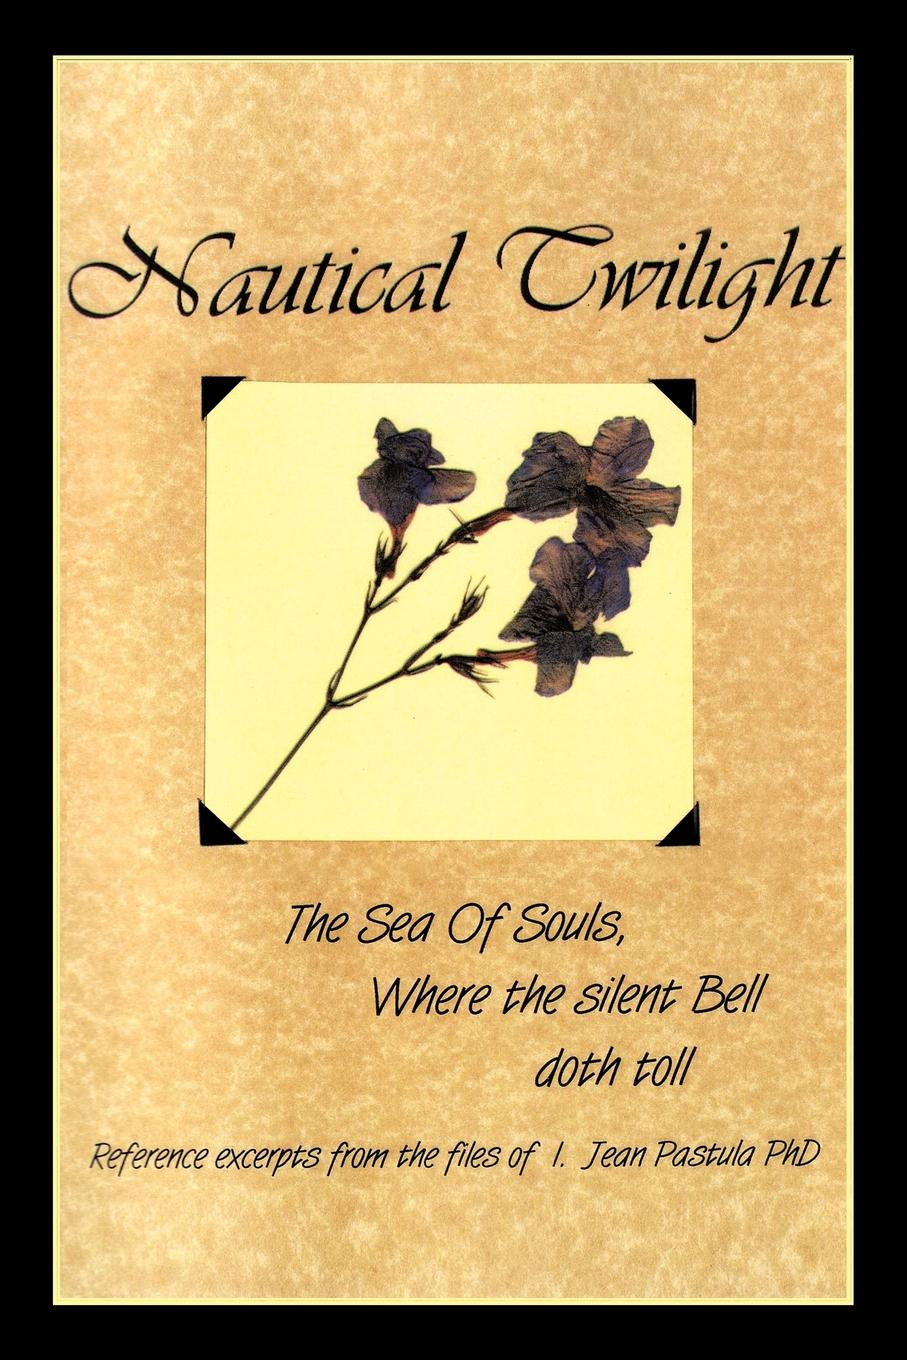 I. Jean Pastula Phd Nautical Twilight. The Sea of Souls Where the Silent Bell Doth Toll luke wright the toll